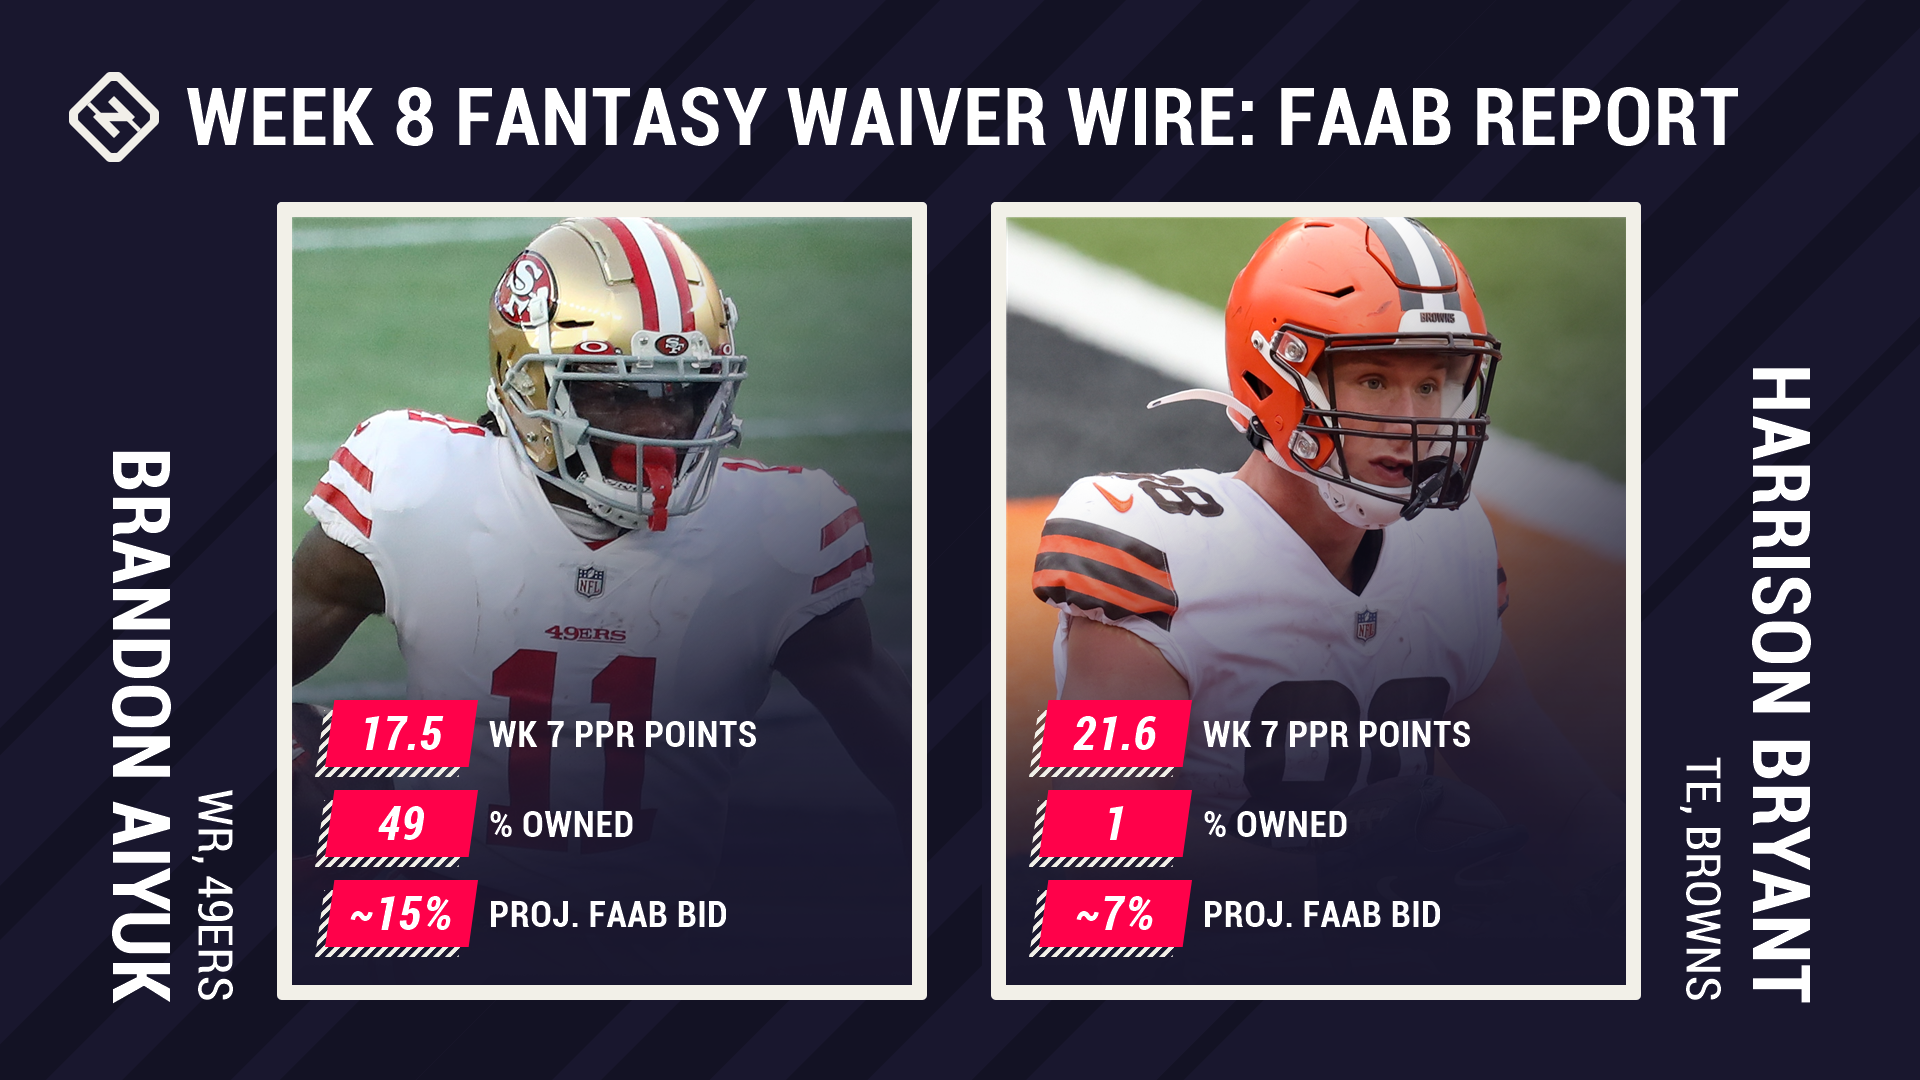 Fantasy Waiver Wire: FAAB Report for Week 8 pickups, free agents